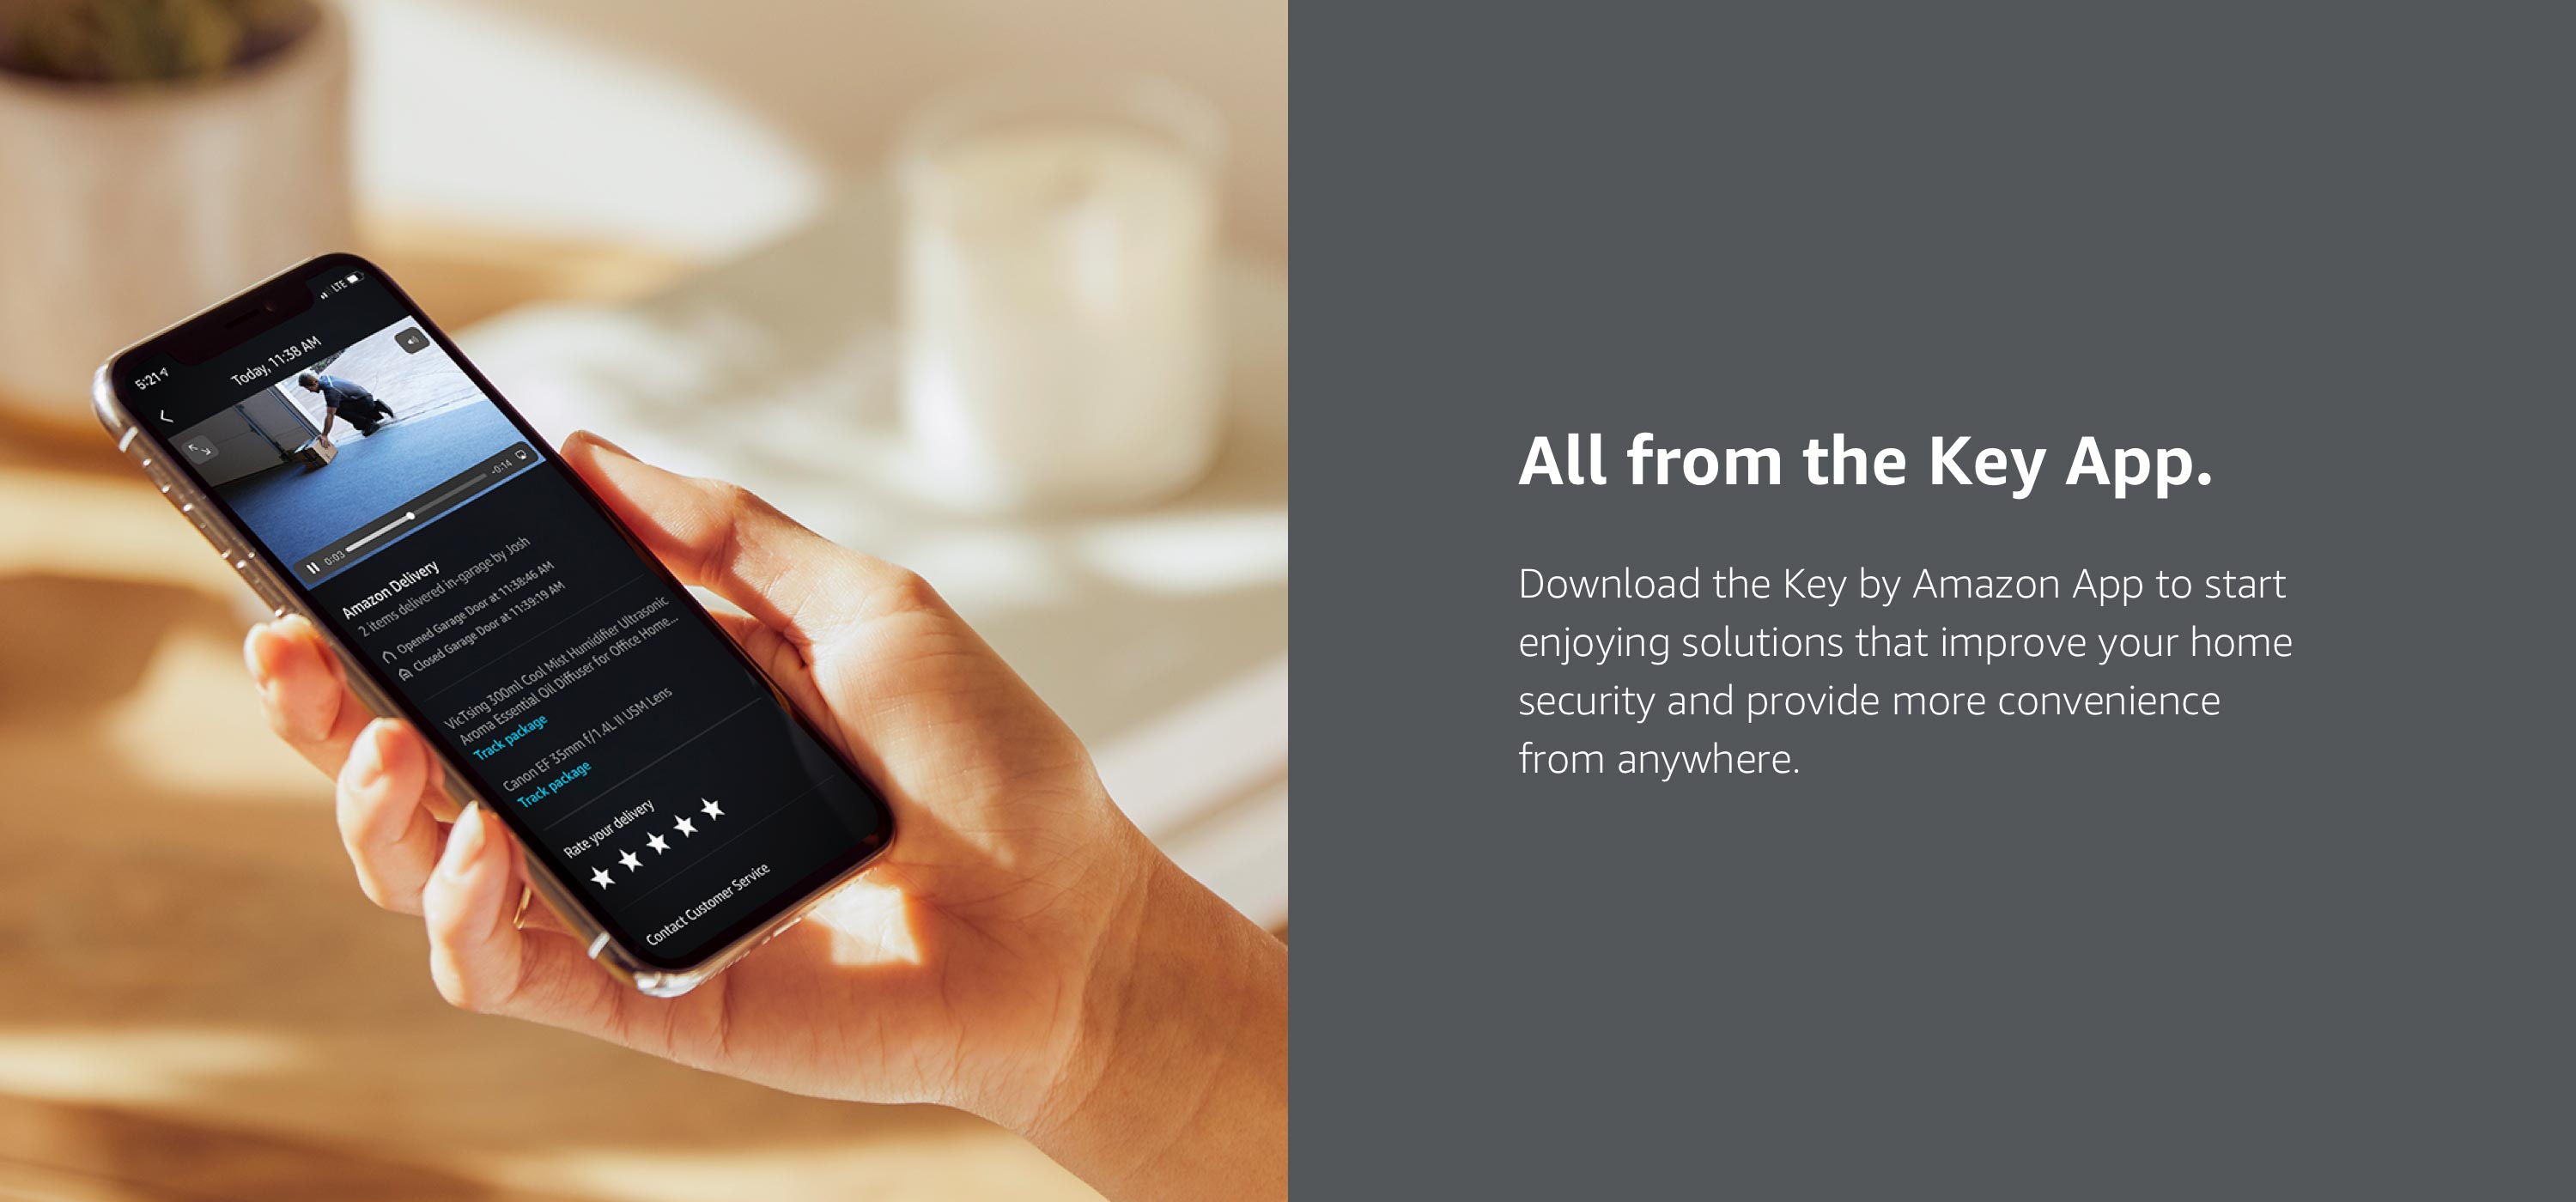 Download the Key by Amazon App to enjoy more security and convenience from anywhere.